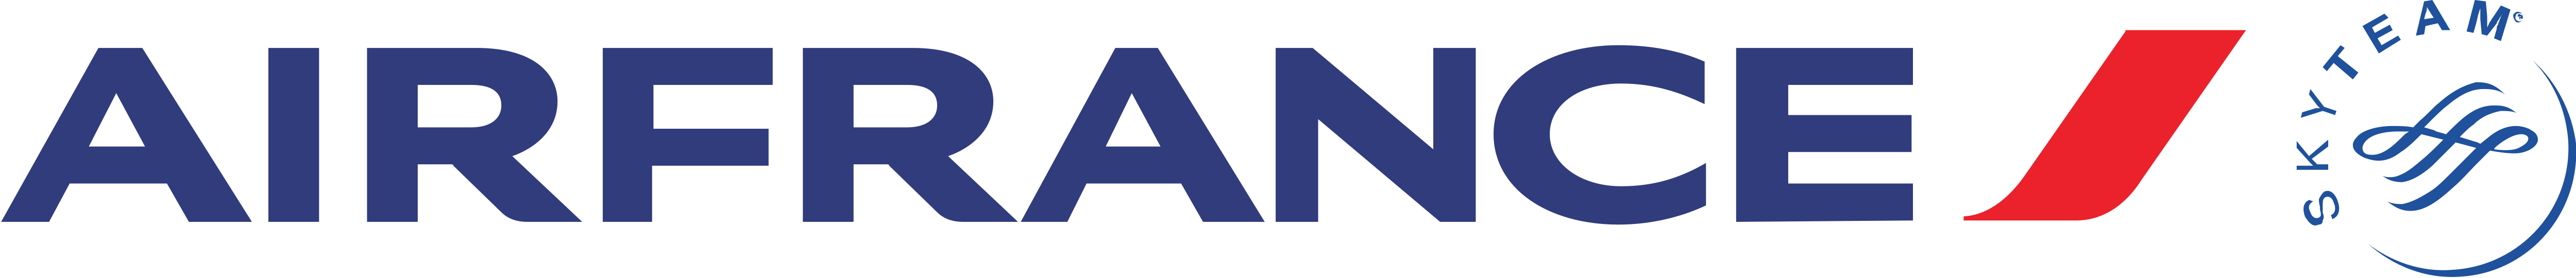 Air France Logo - Air France – Logos Download